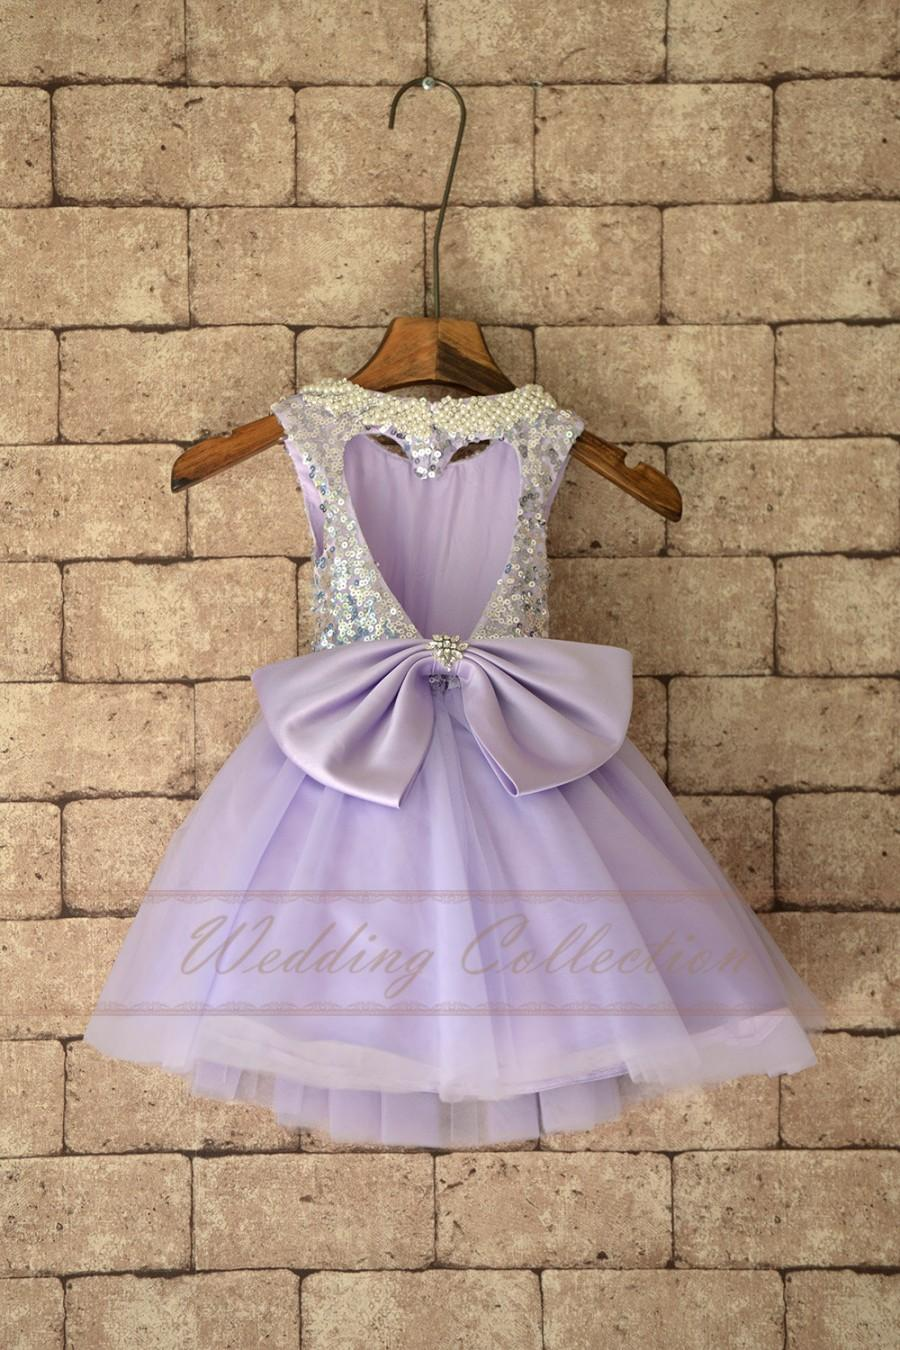 fcb964cd6 Tulle Flower Girls Dress With Sequin Top, Purple Color Birthday Party Dress  with Pearl Neckline